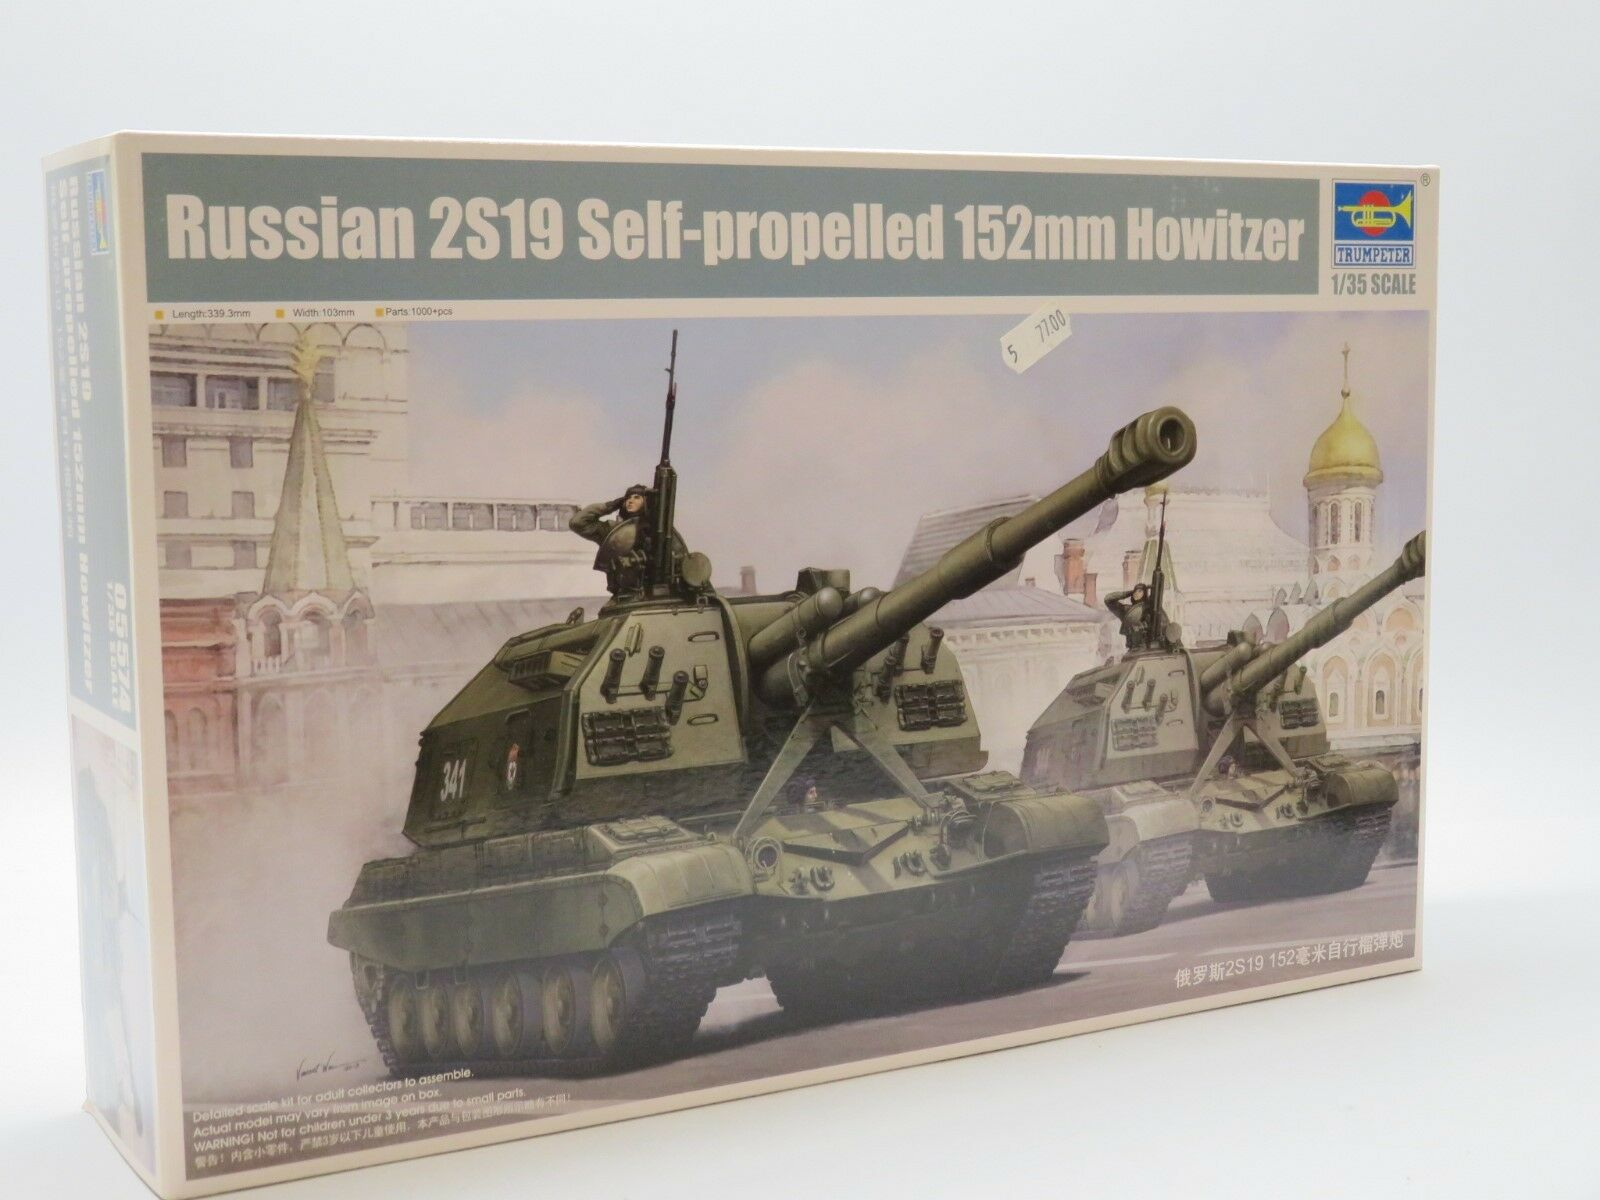 TRUMPETER 05574 1 35 Russian 2S19 Self-propelled 152mm Howitzer